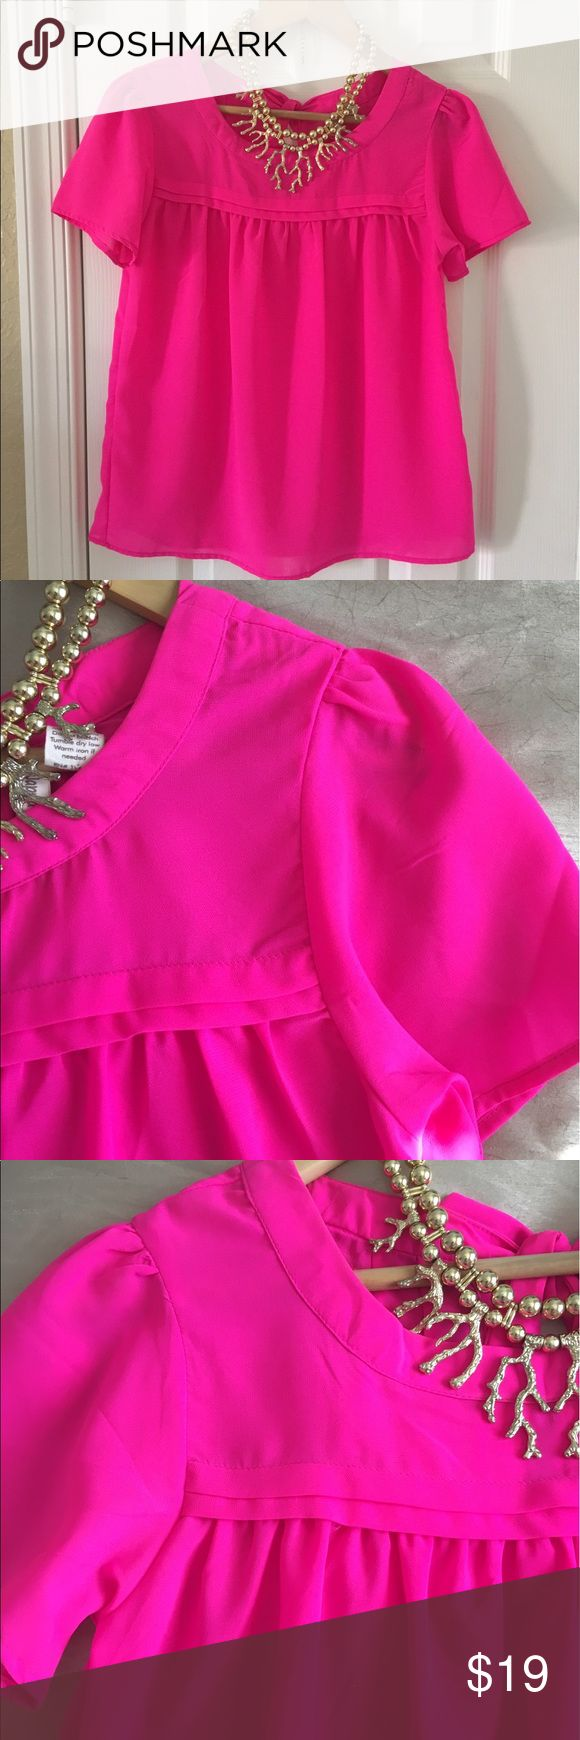 Hot Pink Blouse Adorable Pink Blouse with slight puff Sleeve. So cute! Great color, slightly sheer. Dress up or dress down. Sat in closet, Excellent Condition! Tops Blouses